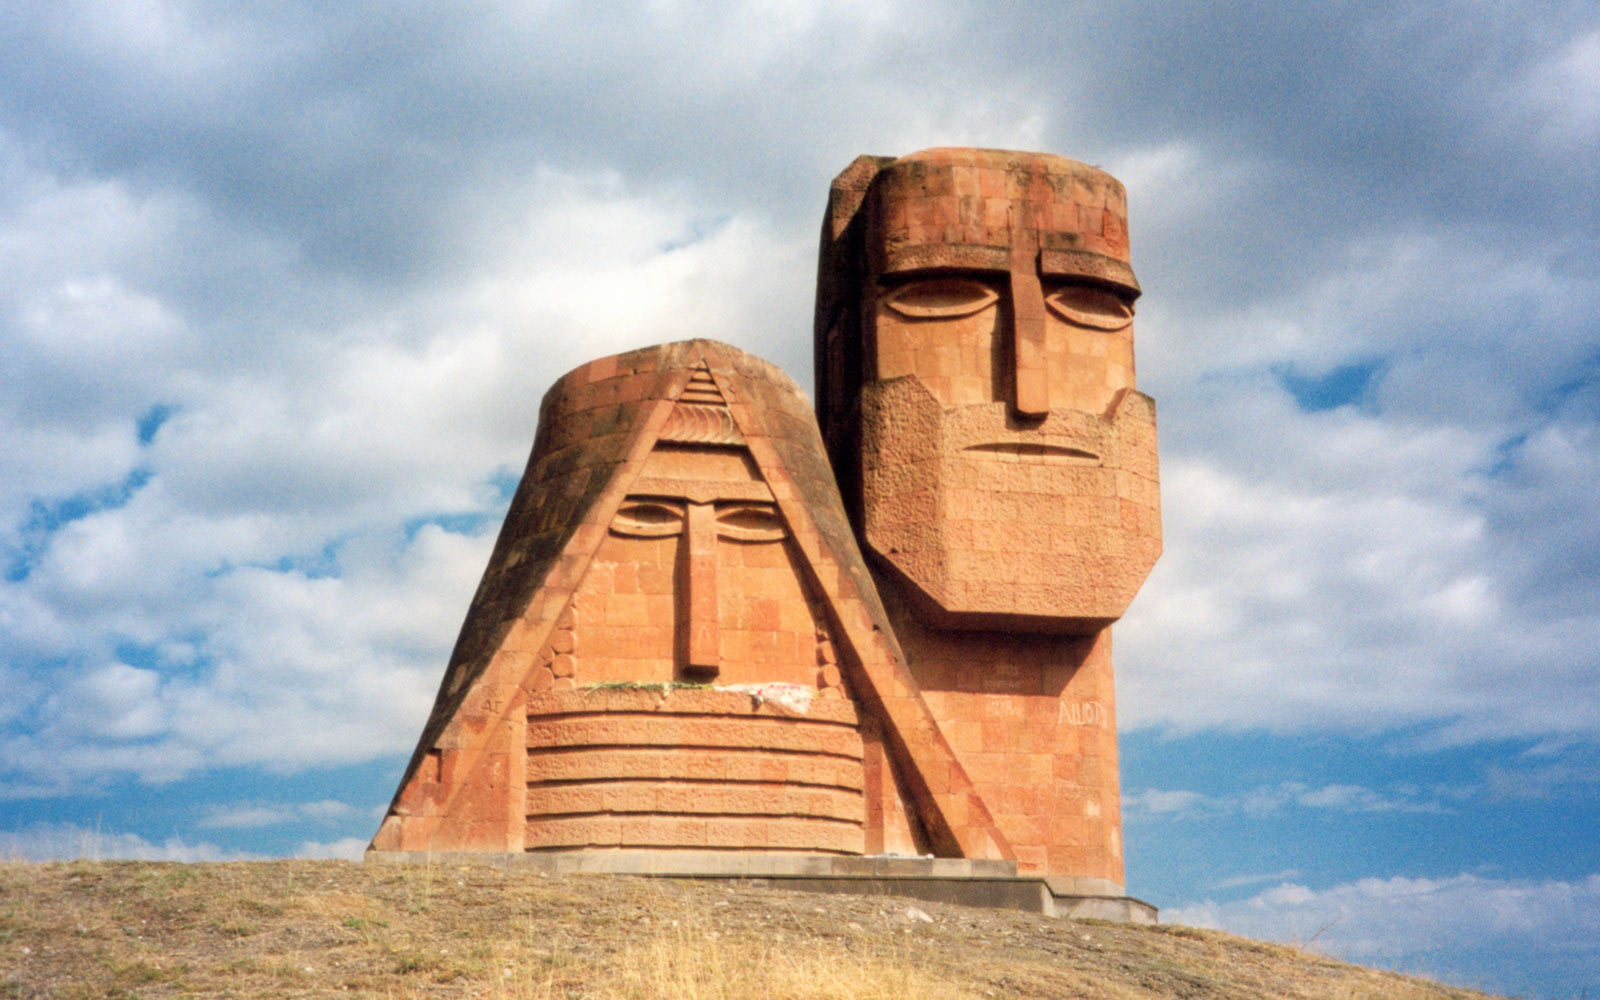 The Republic of Artsakh